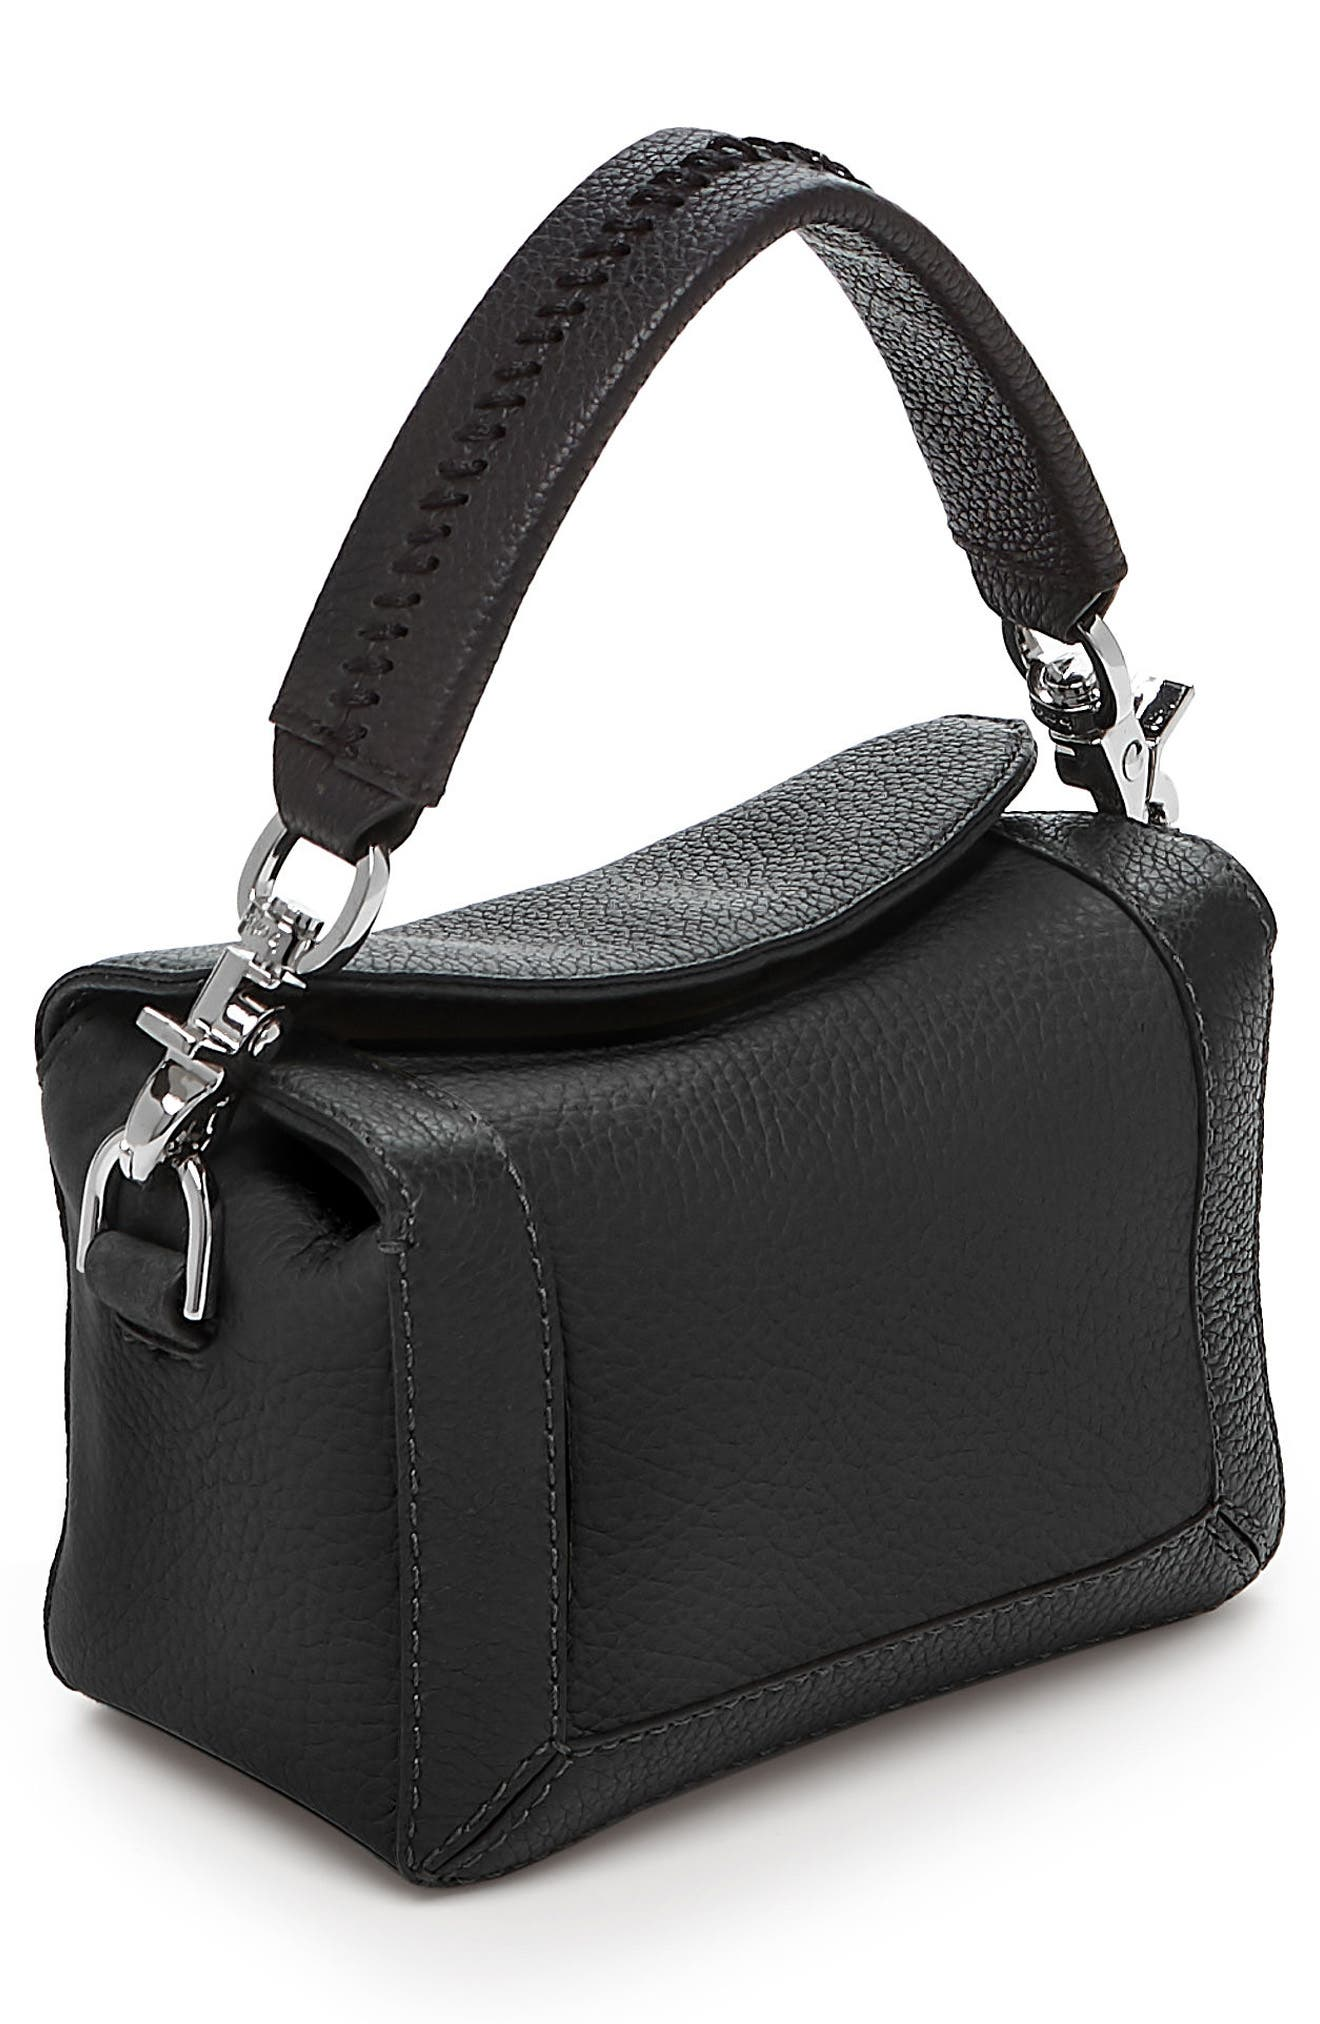 BOTKIER,                             Small Barrow Leather Crossbody Bag,                             Alternate thumbnail 3, color,                             001